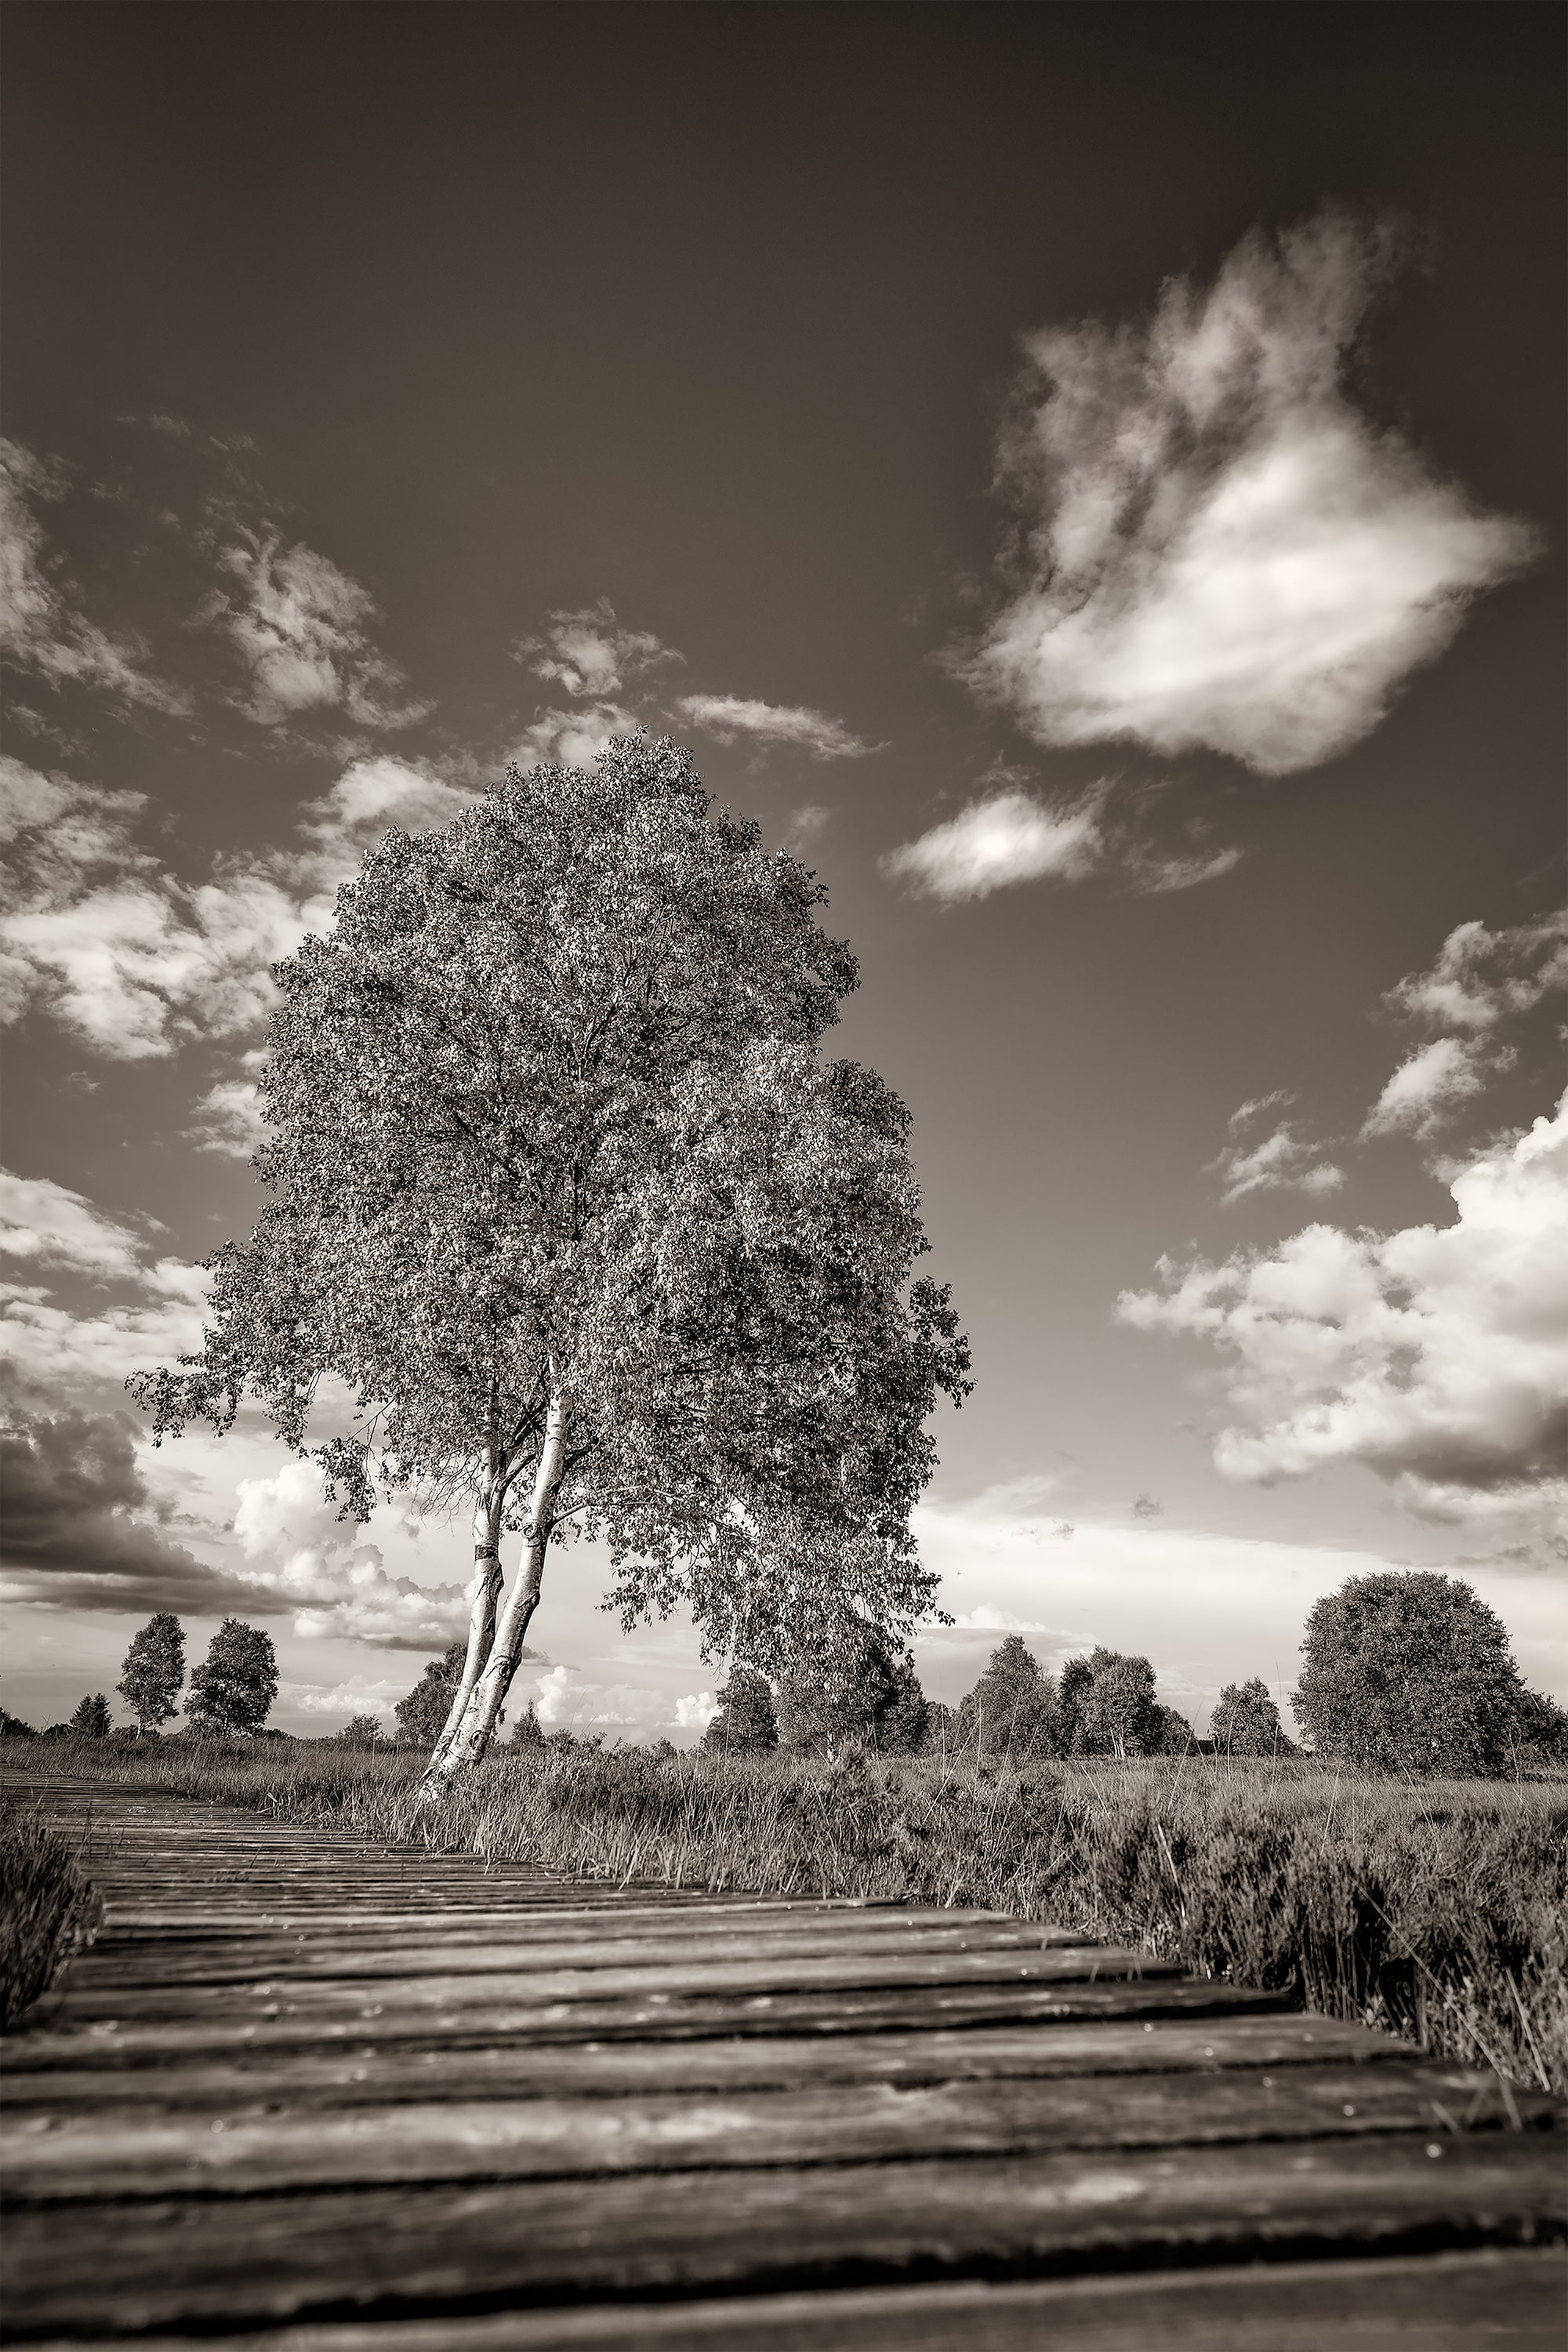 michael schaake sony alpha 7RM4 black and white image of a lone tree against a clean sky with fluffy clouds